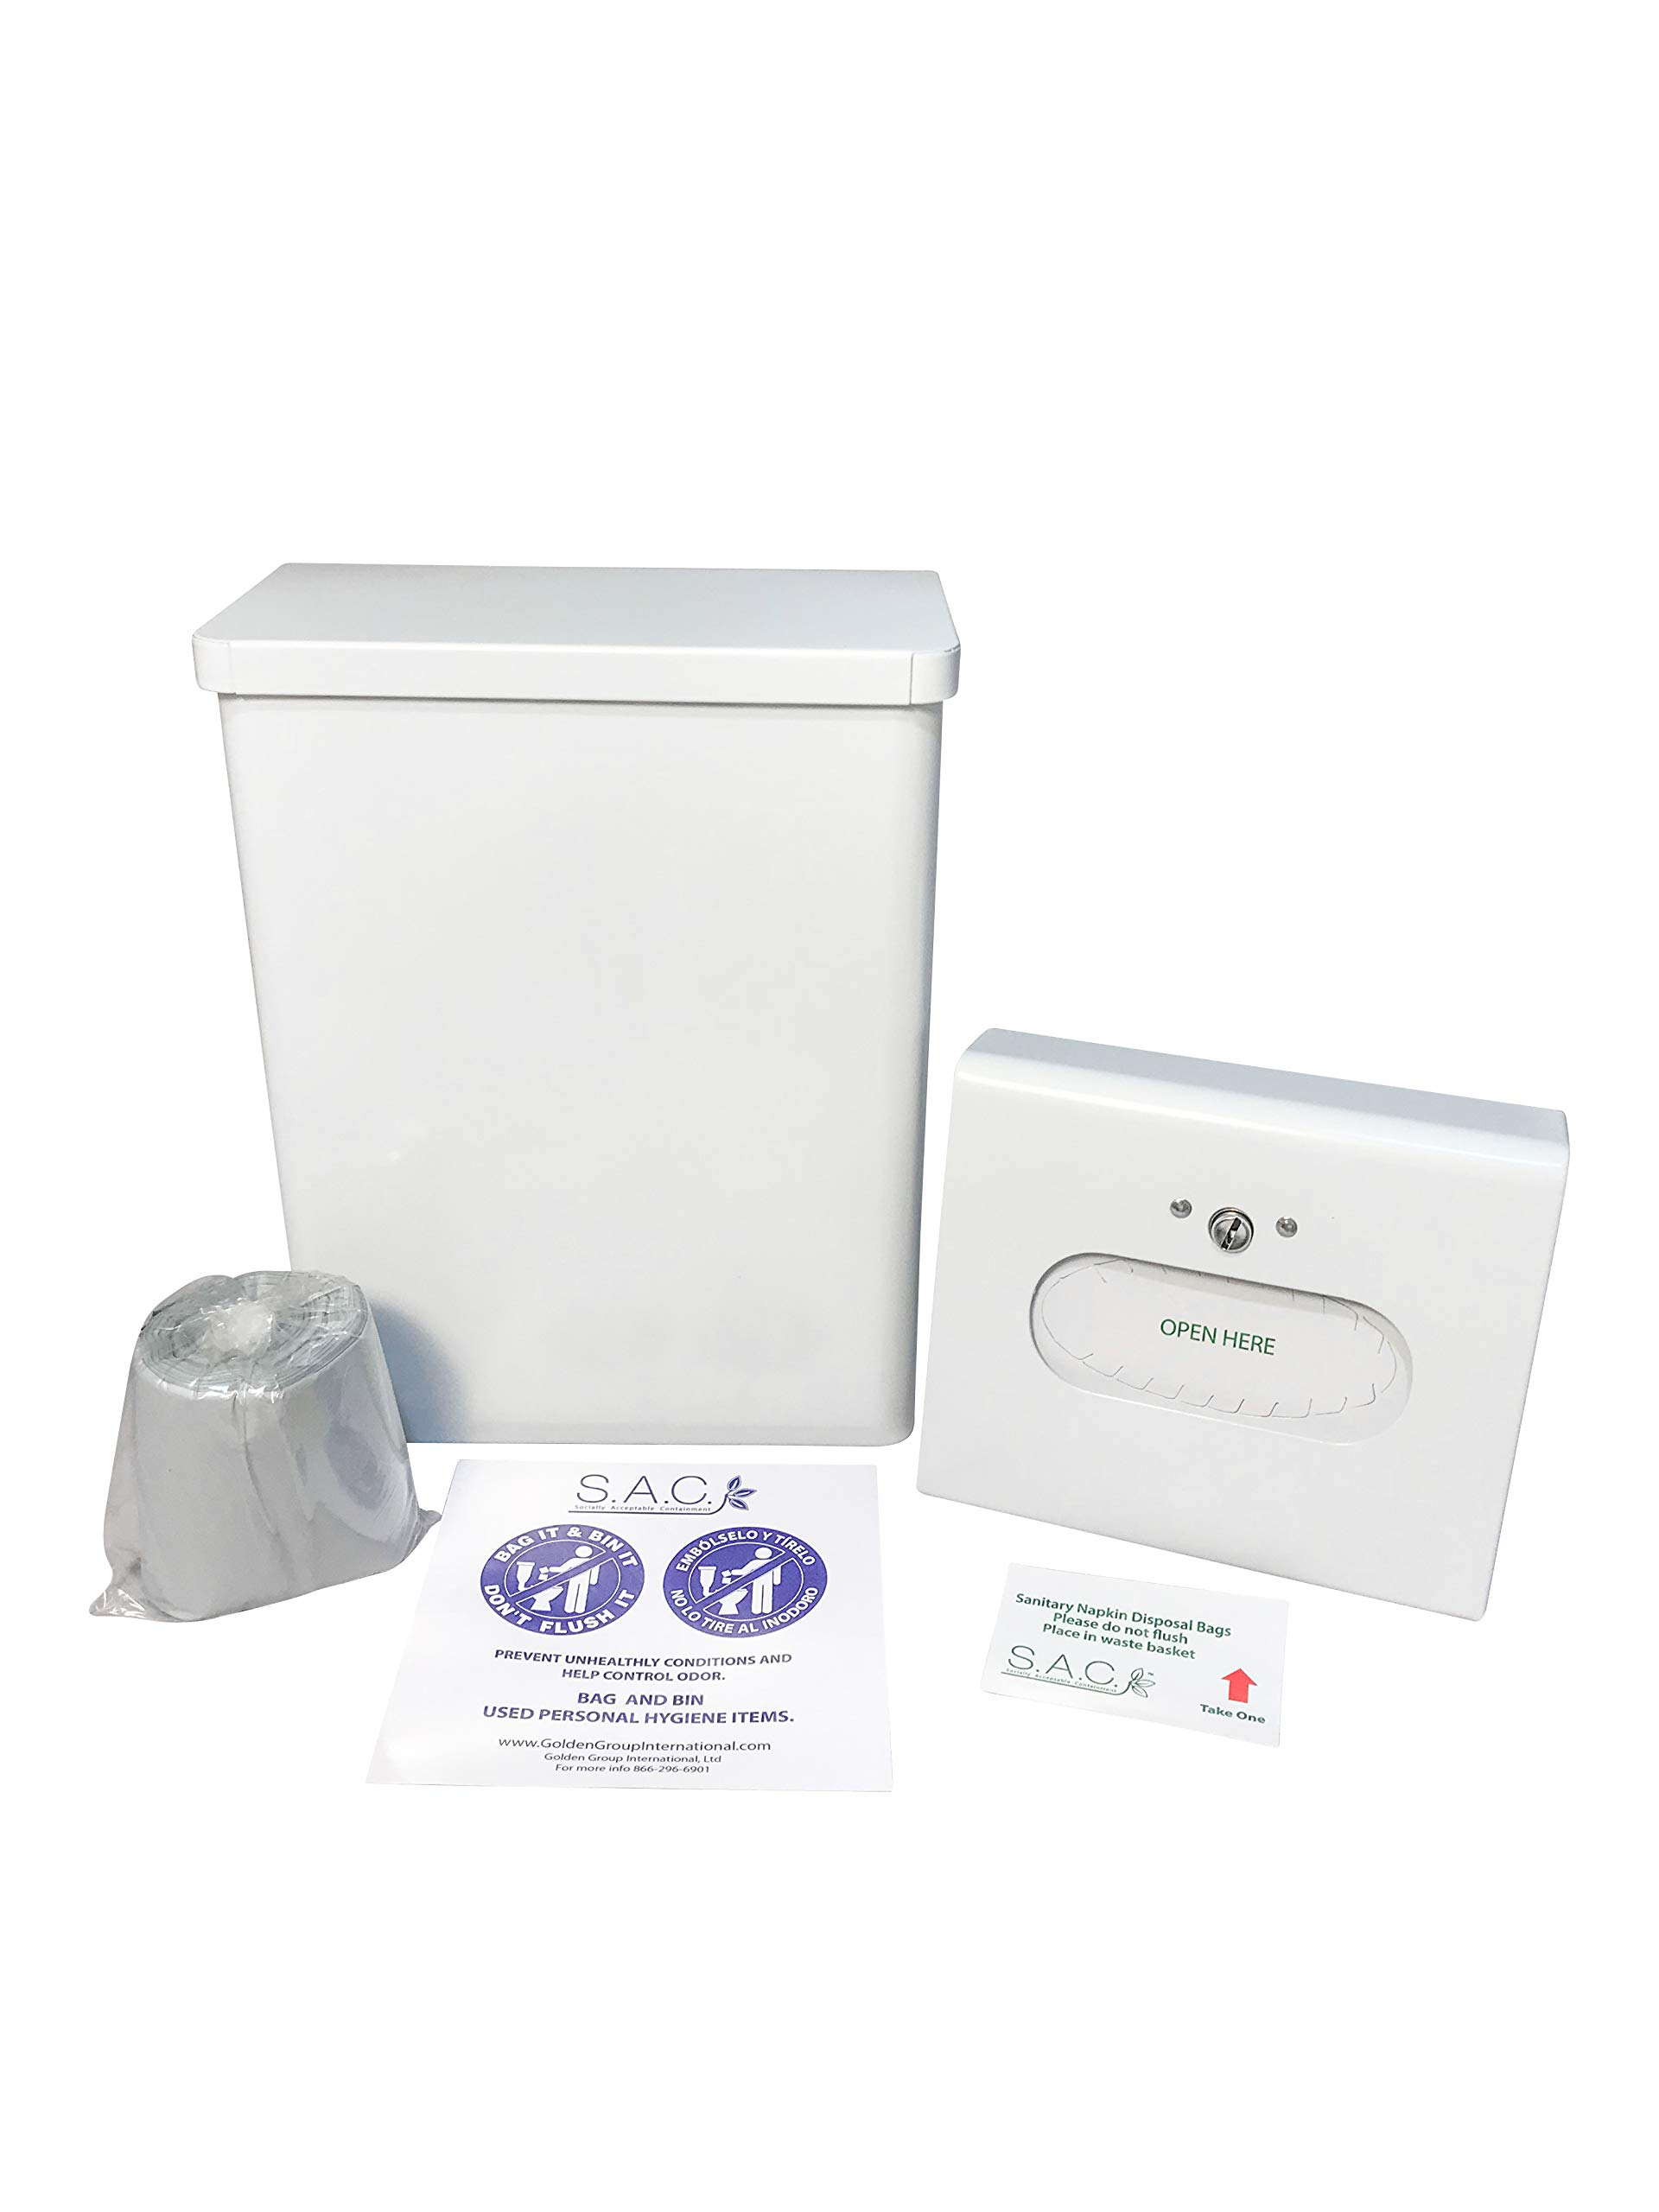 Sanitary Napkin Receptacle, Surface Mounted, with Liners, Courtesy Disposal Bags and Dispenser, Steel (White)